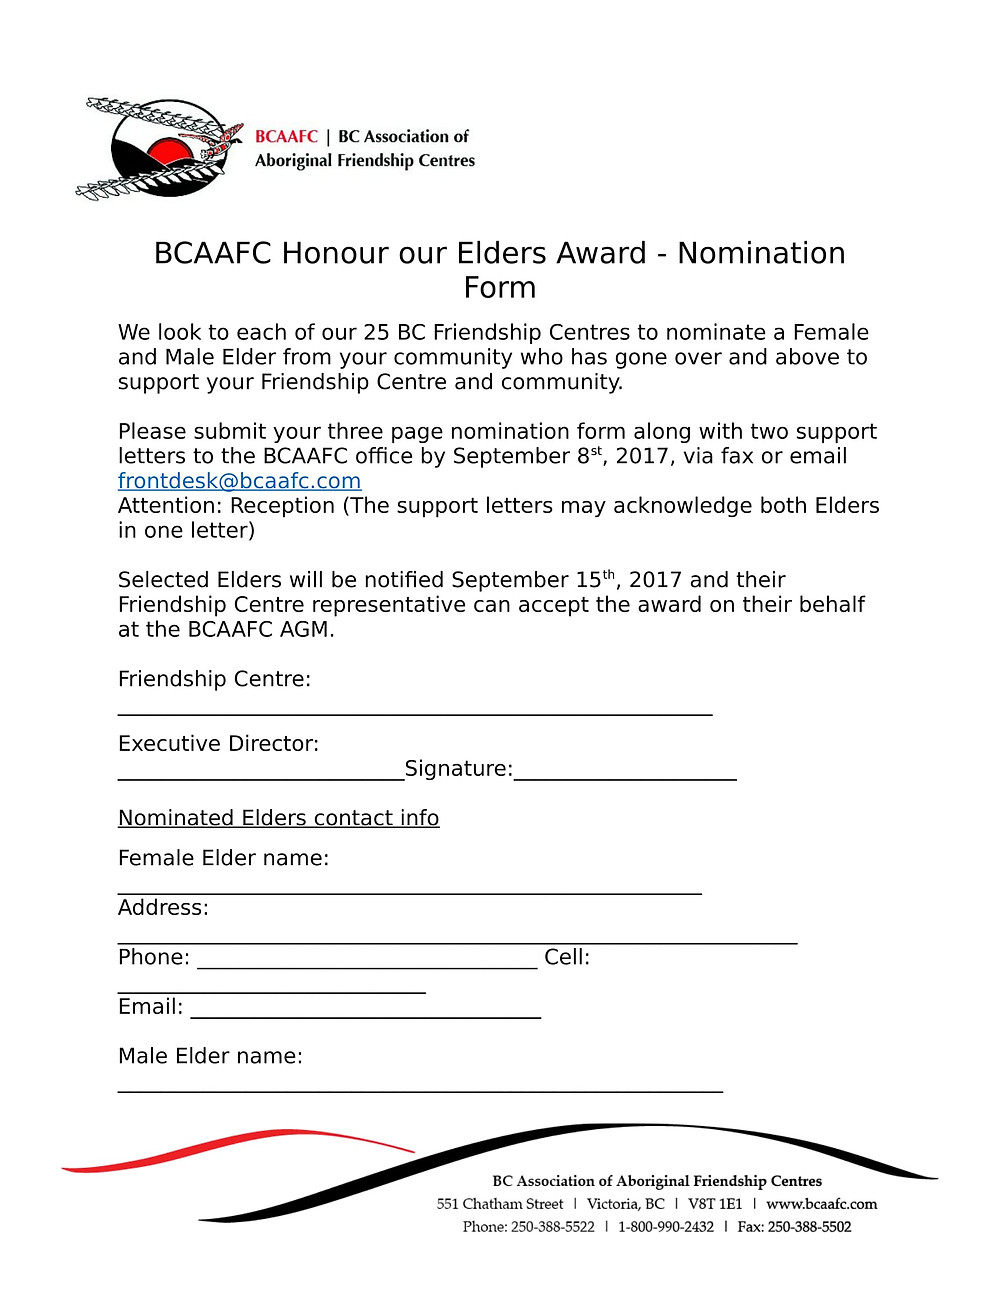 Honour our Elders Award!